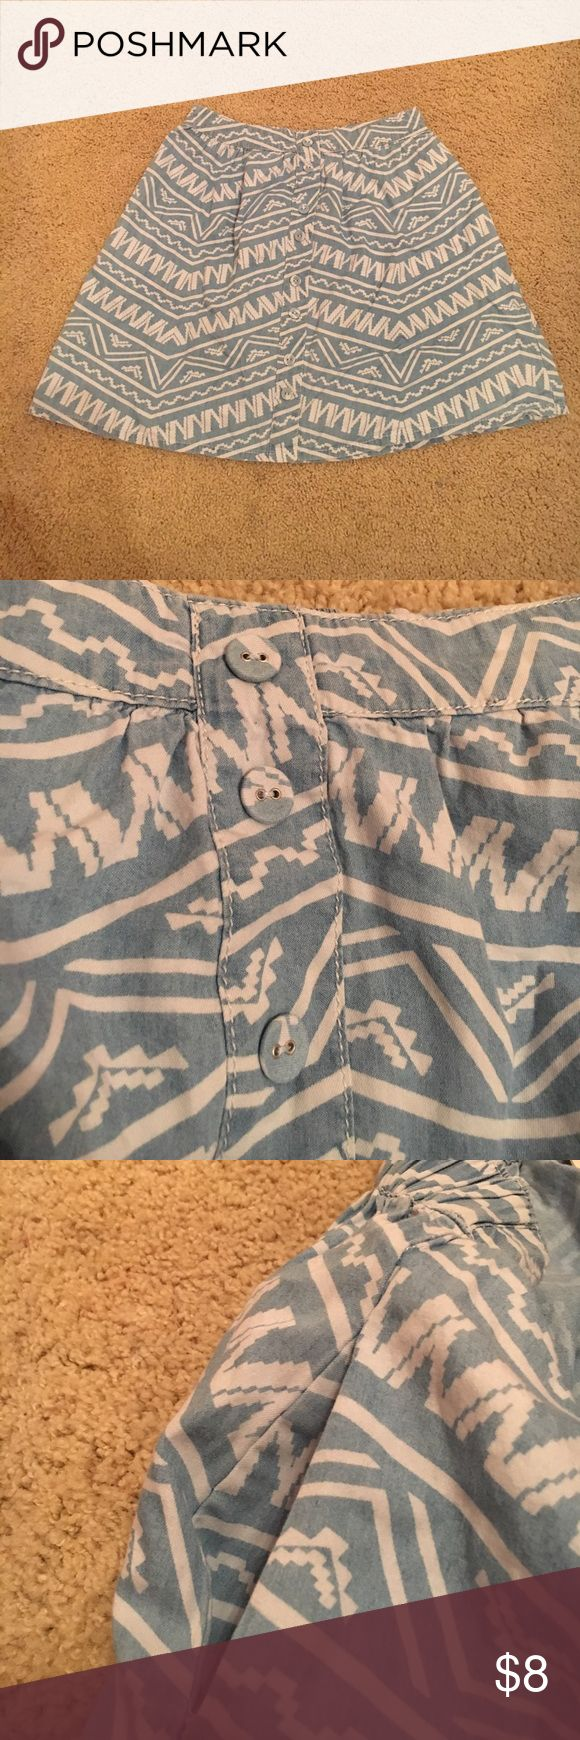 Tribal print skirt Cute tribal pattern skirt with two front pockets and stretchy waist. Mossimo Supply Co Skirts Midi